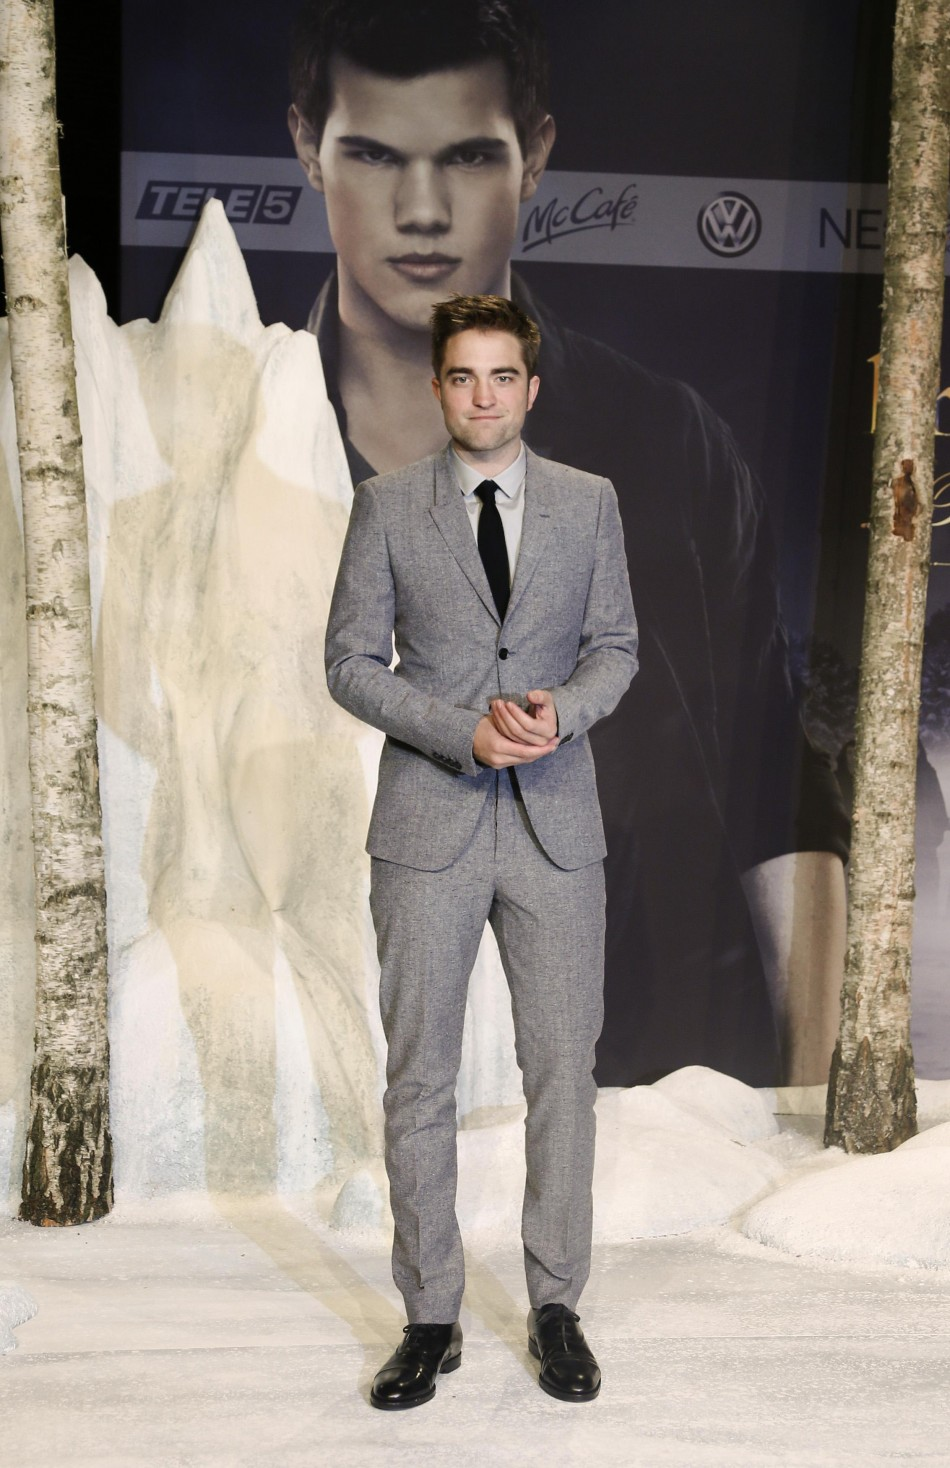 Pattinson poses for pictures before German premiere of The Twilight Saga: Breaking Dawn Part 2 in Berlin